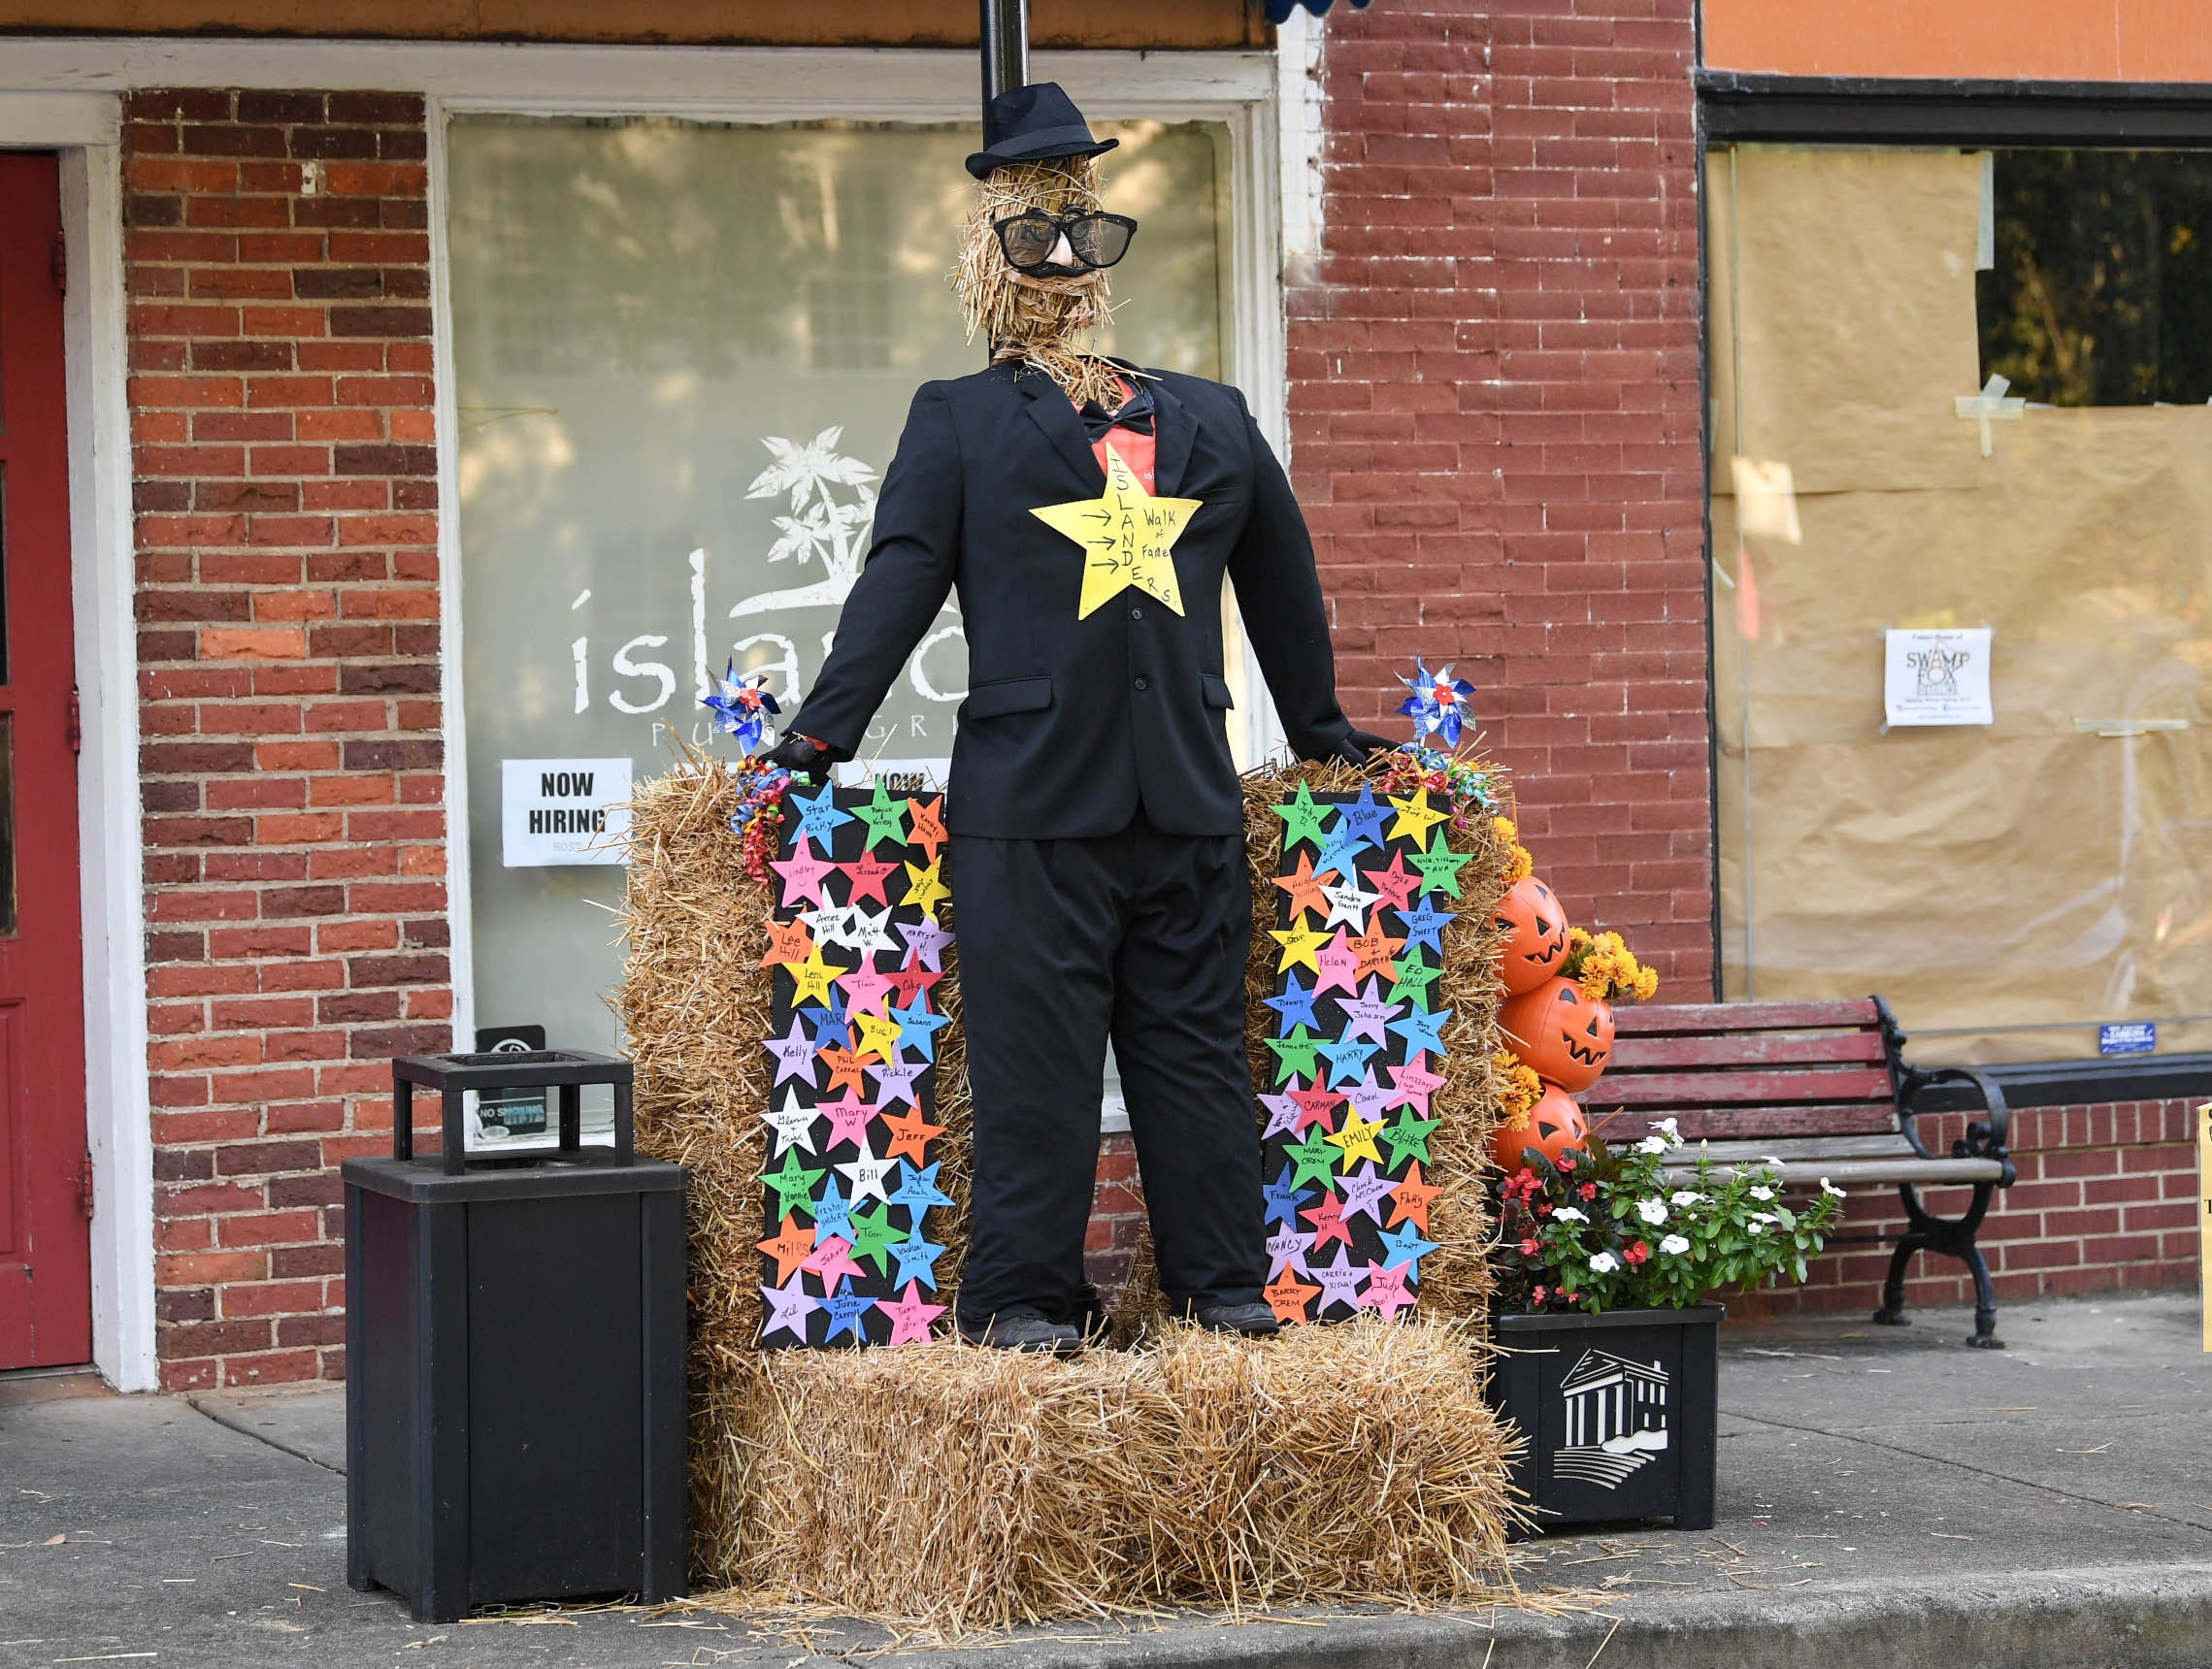 A scarecrow on display in front of the Lazy Islander is one of many displays in The Pendleton Scarecrow Contest leading up to the 20th Fall Harvest Festival in the village green Saturday, October 6 from 10 a.m. to 5 p.m. The annual contest in Pendleton for businesses, individuals, groups, organizations and churches who create fun not scary Scarecrows. People driving around the downtown square can see different theme scarecrows.